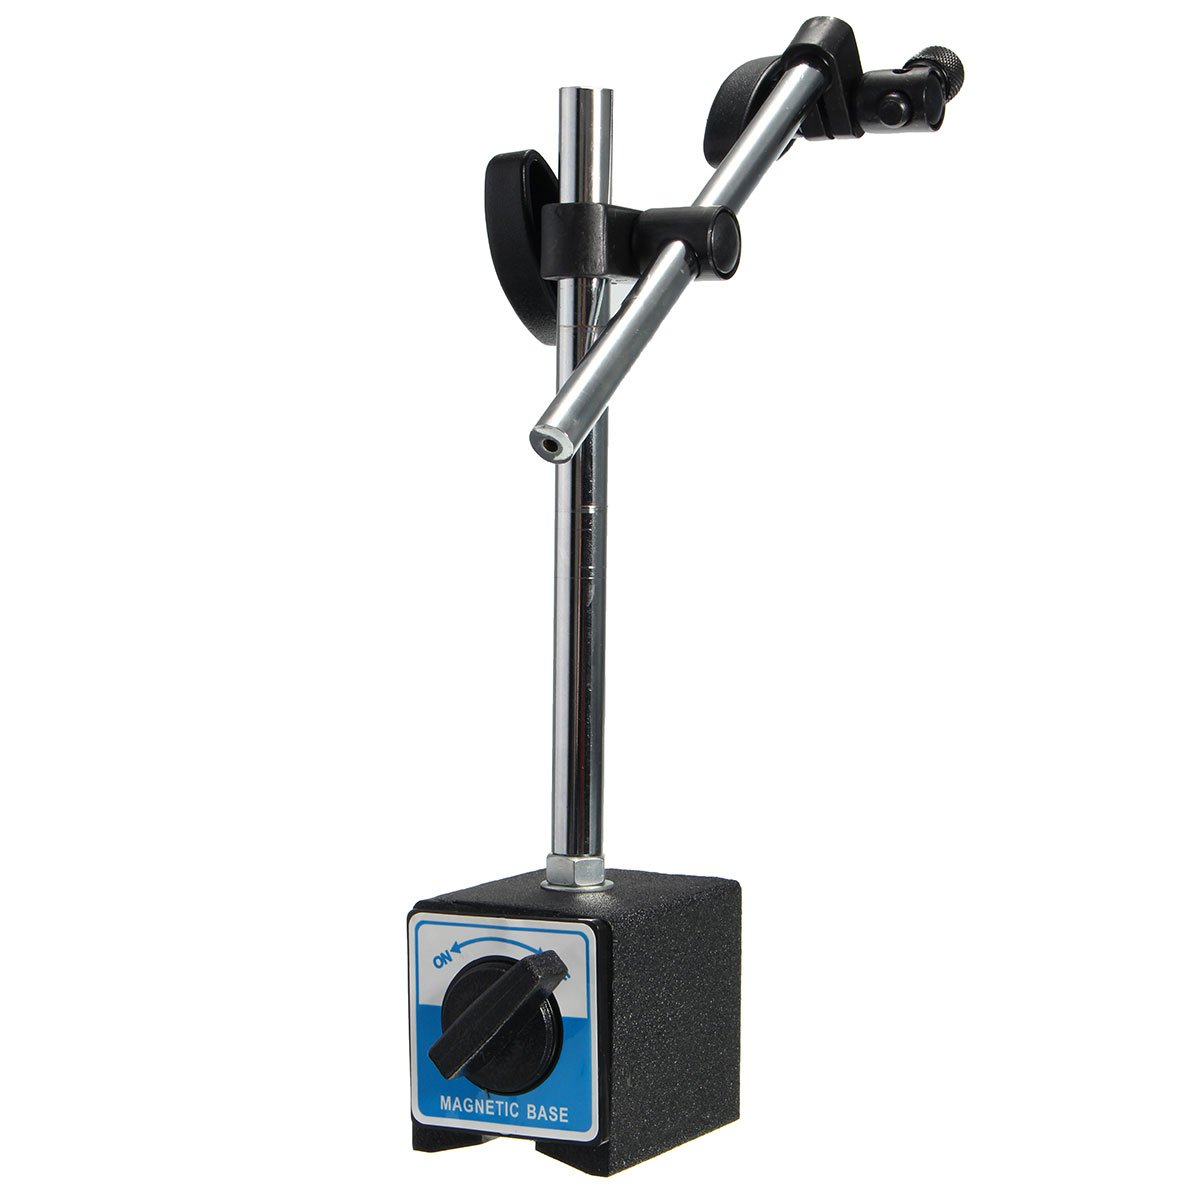 New Magnetic Base Holder Stand With Double Adjustable Pole For Dial Digtal Indicator Test Gauge Ymb-B ON/OFF Tool Parts